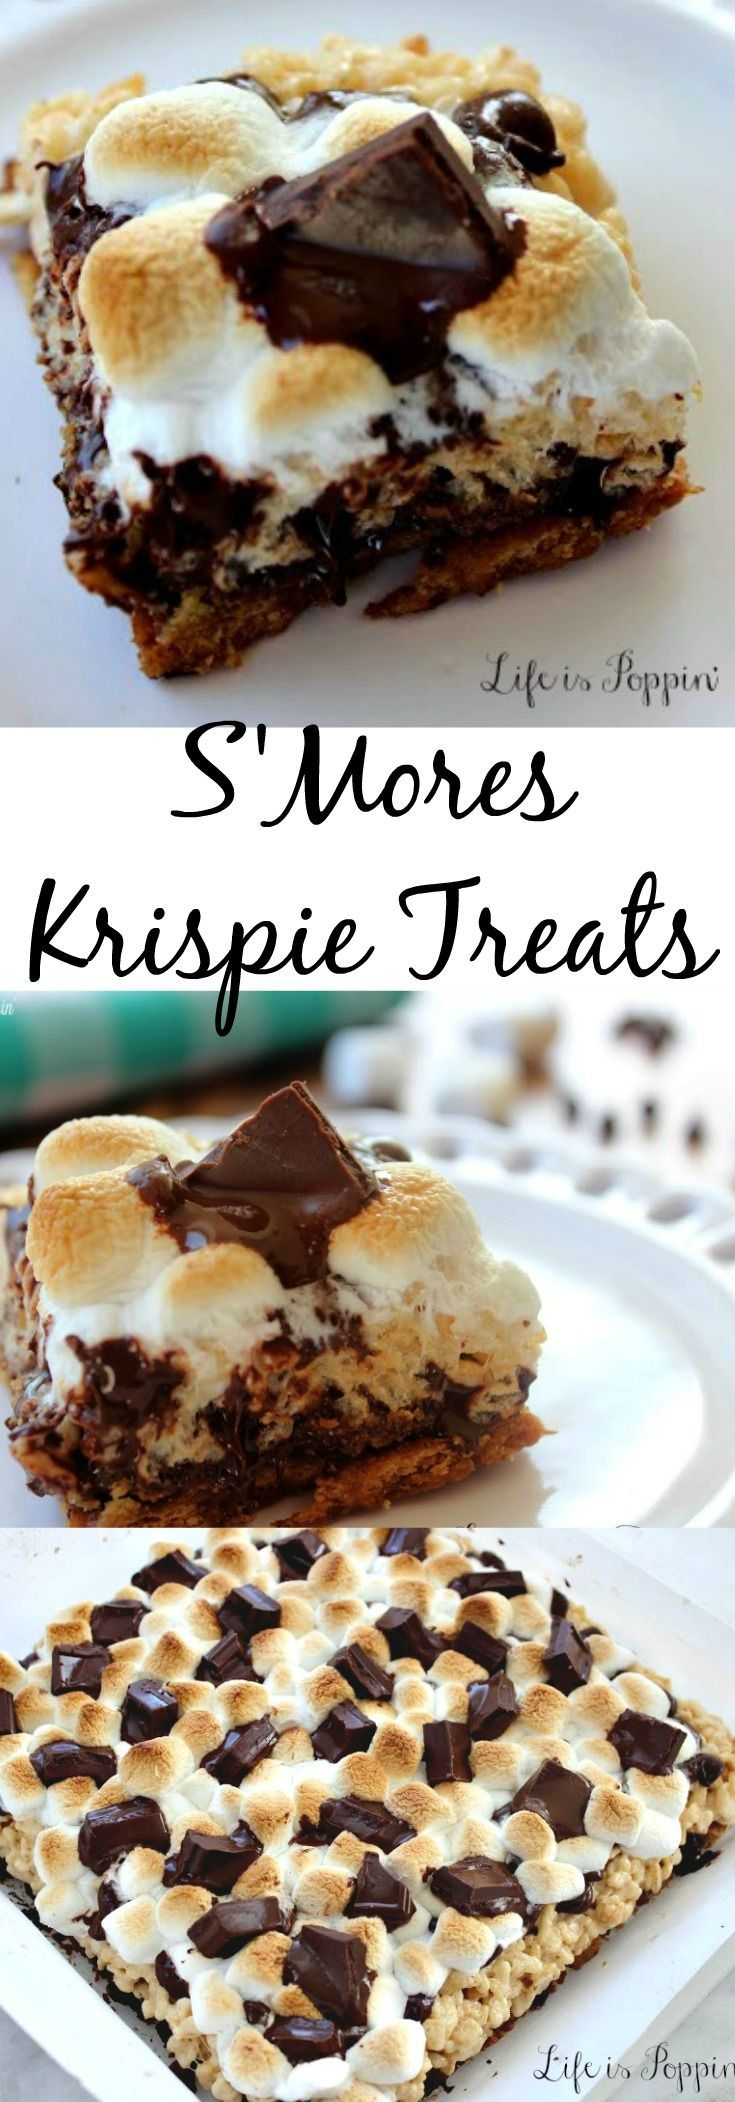 Baby shower rice krispy treat ideas - These S Mores Krispie Treats Are The Perfect Spin Off Of Everyone S Favorite Campfire Trio Of Graham Crackers Chocolate And Marshmallows